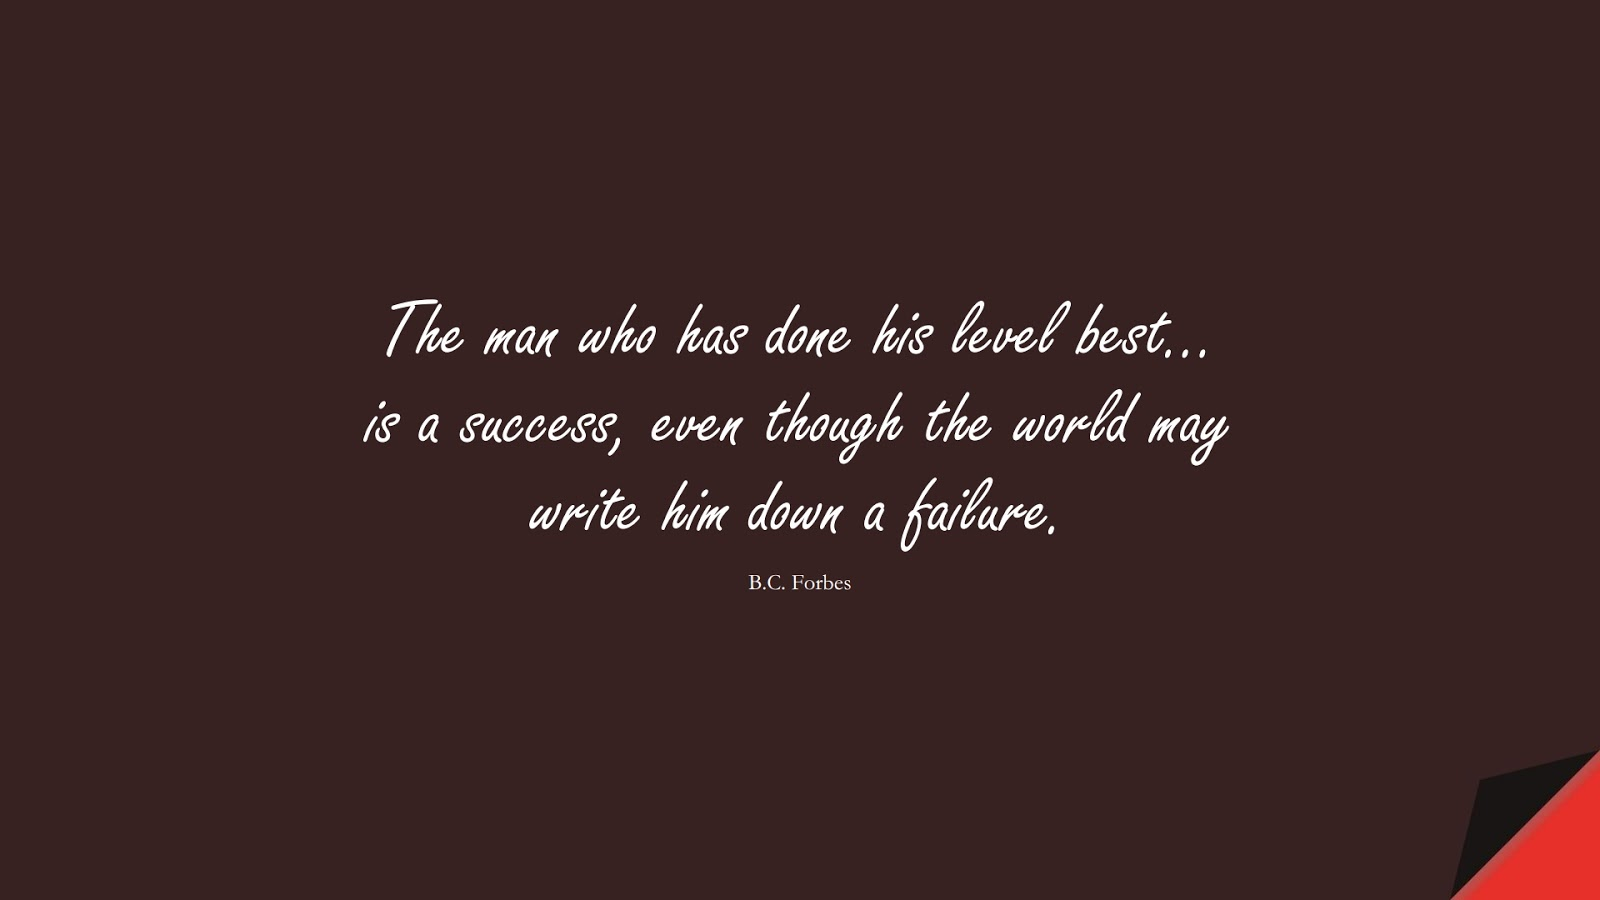 The man who has done his level best… is a success, even though the world may write him down a failure. (B.C. Forbes);  #SuccessQuotes